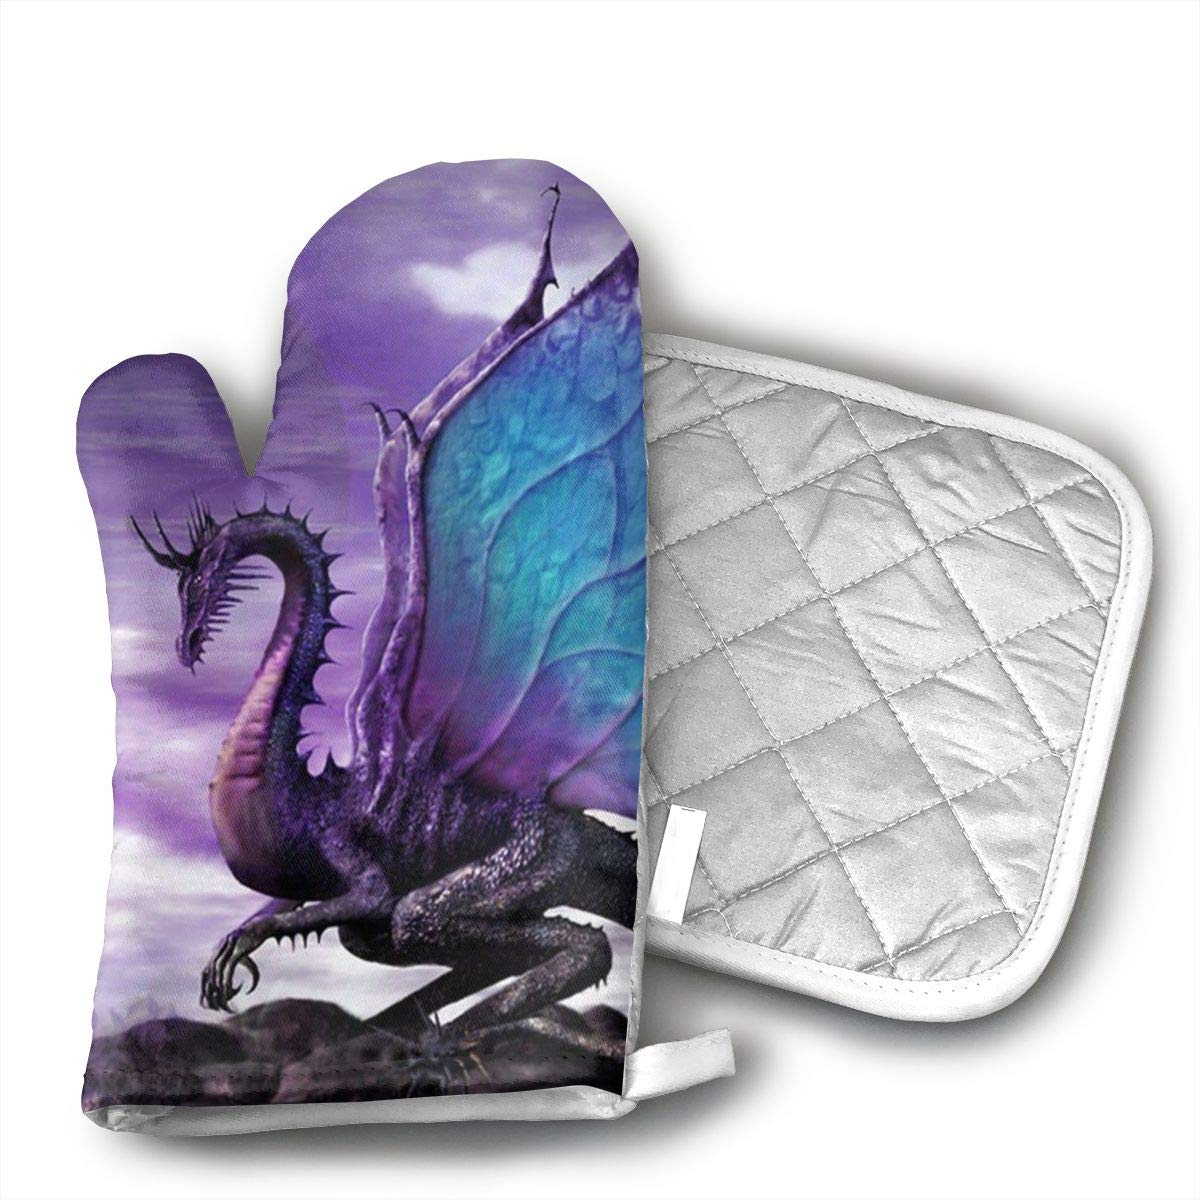 UYRHFS Purple Dragon Oven Mitts and Pot Holder Kitchen Set with, Heat Resistant, Oven Gloves and Pot Holders 2pcs Set for BBQ Cooking Baking